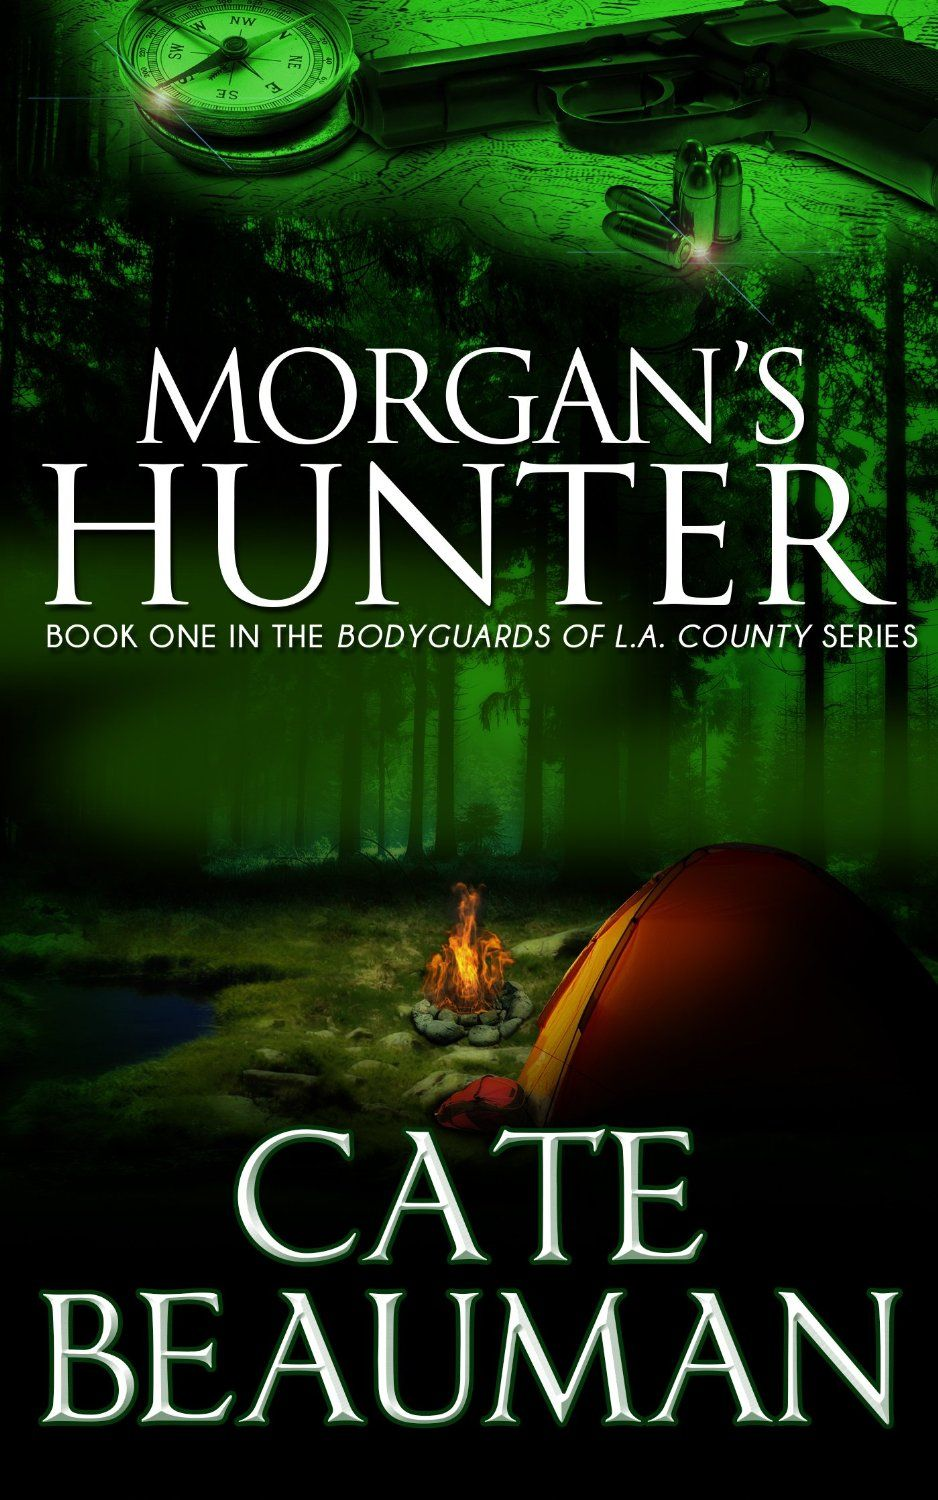 Morgans Hunter Book One In The Bodyguards Of L A County Series, by Cate Beauman ($2.99)